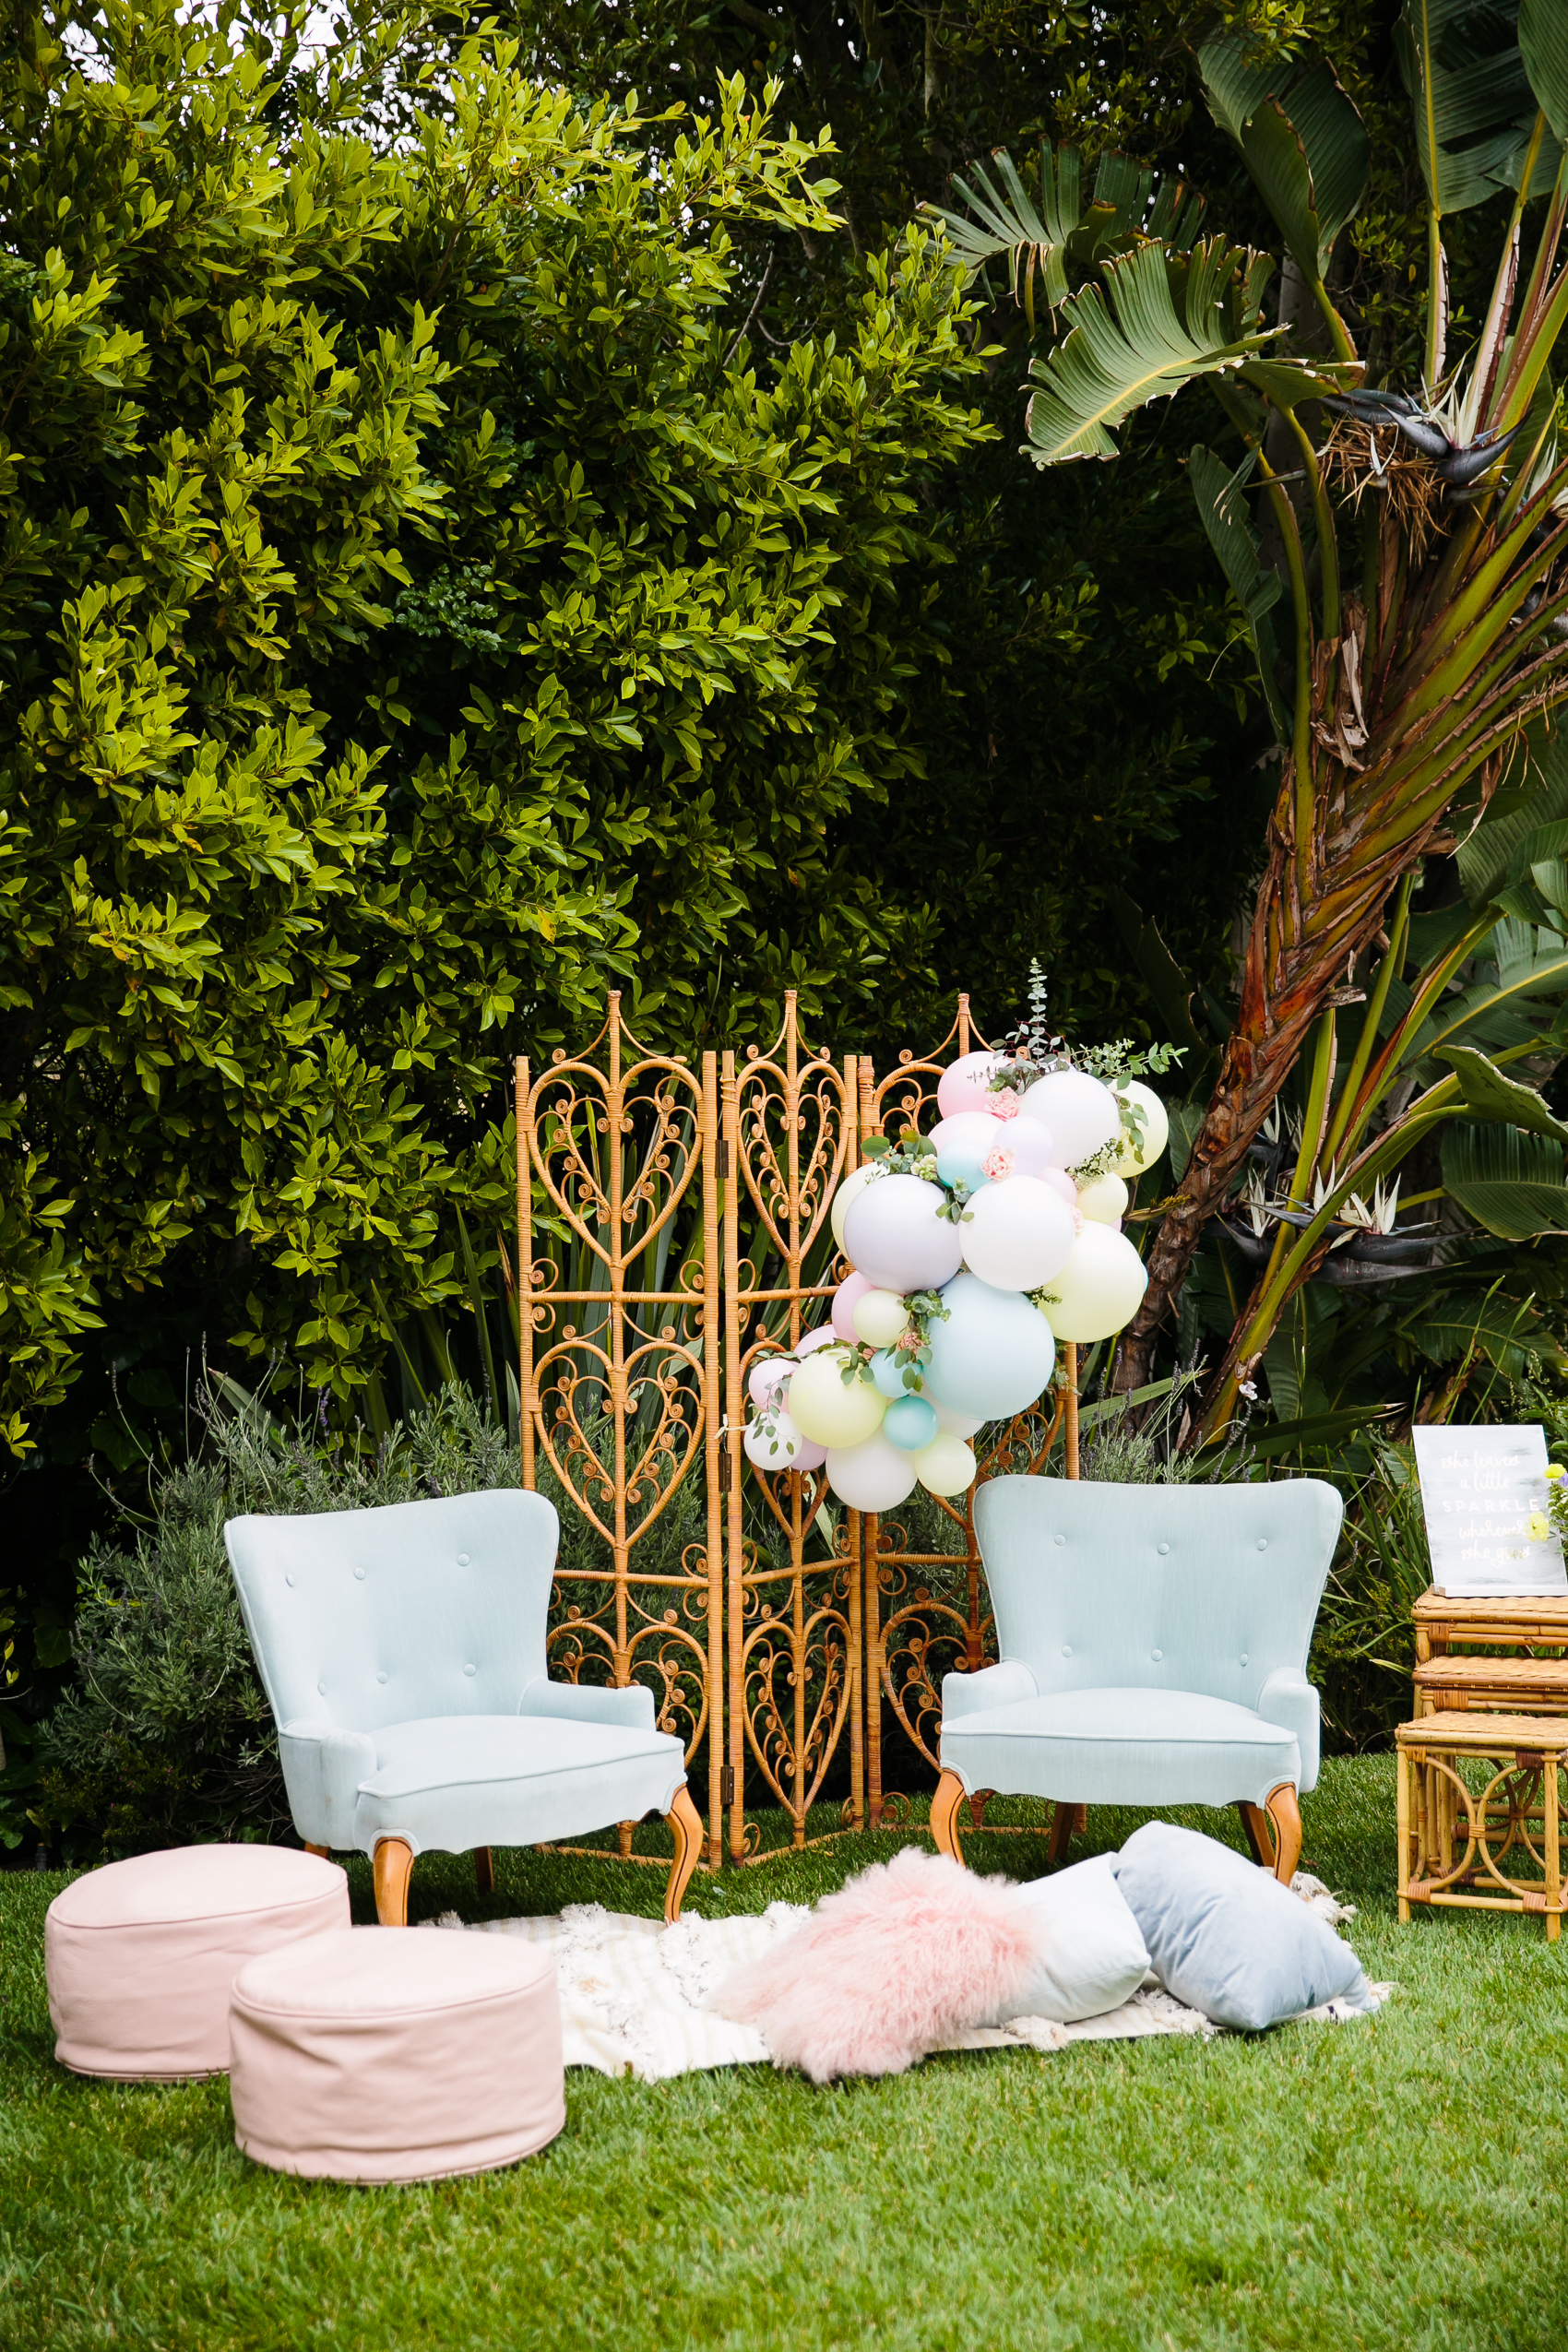 Los_Angeles_Family_Photographer_Luxury_Childrens_Party_Beverly_Hills_Unicorn_Birthday_Party-0271.jpg